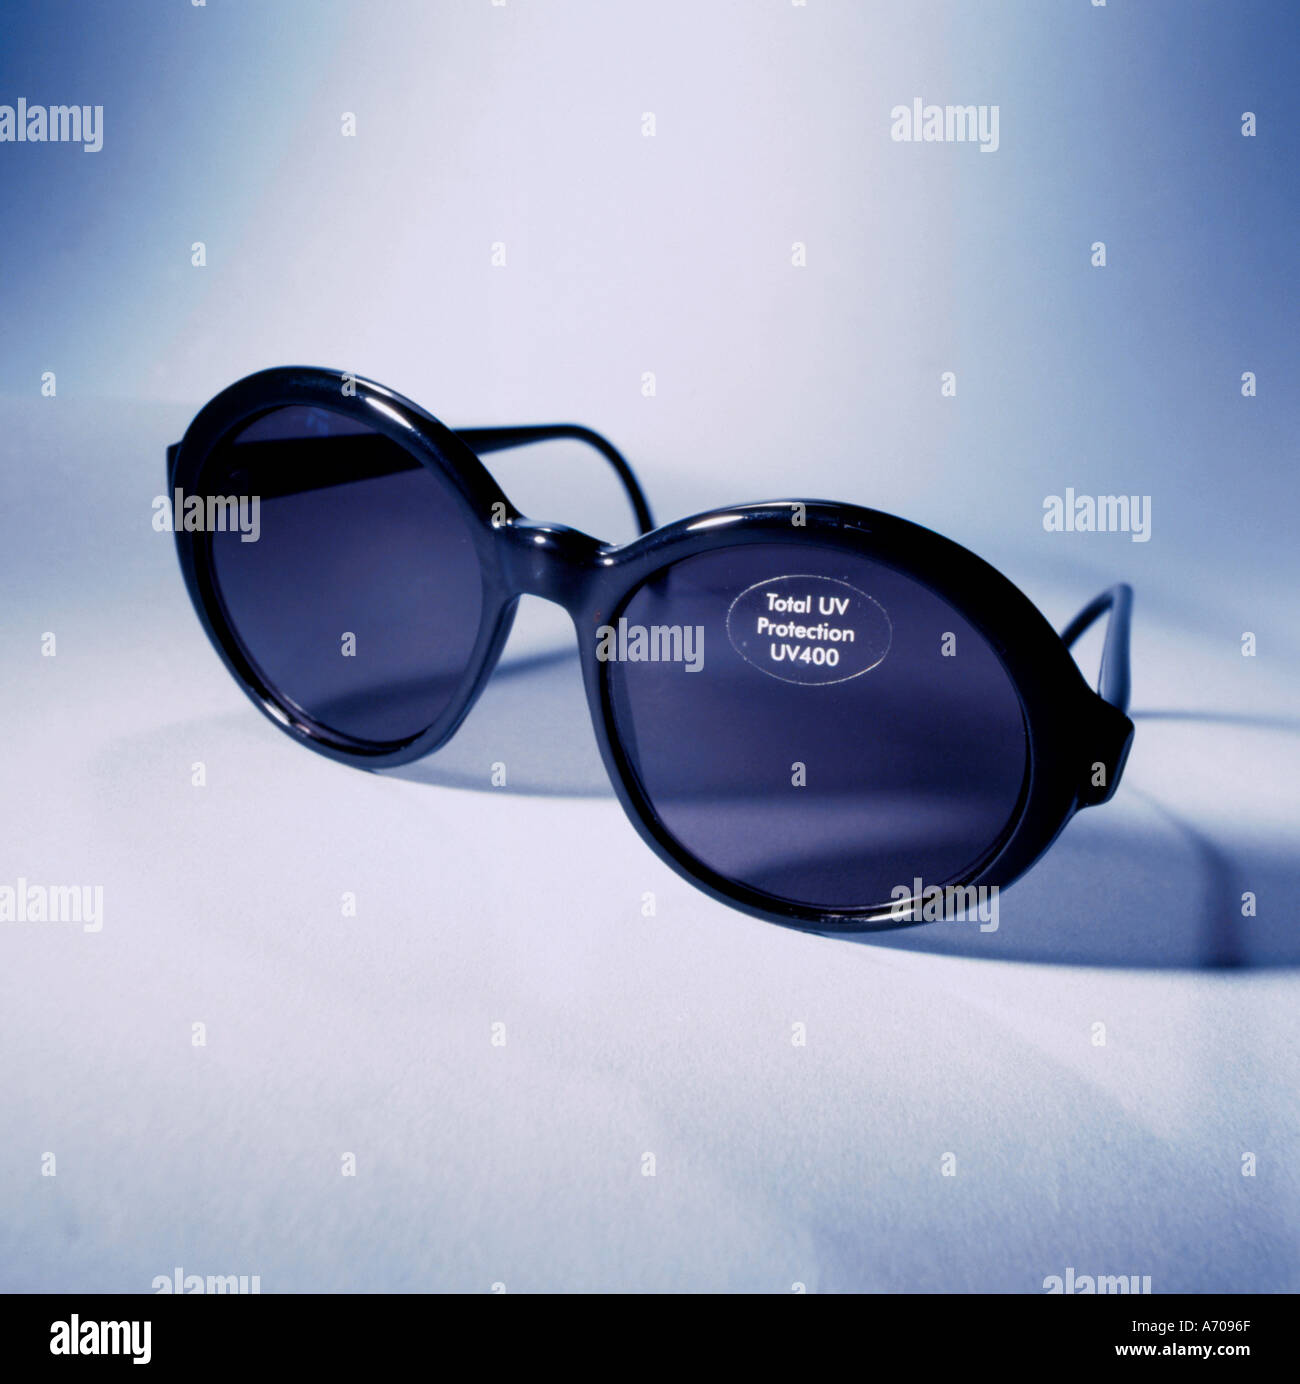 sunglasses-with-uv-ultraviolet-protectio